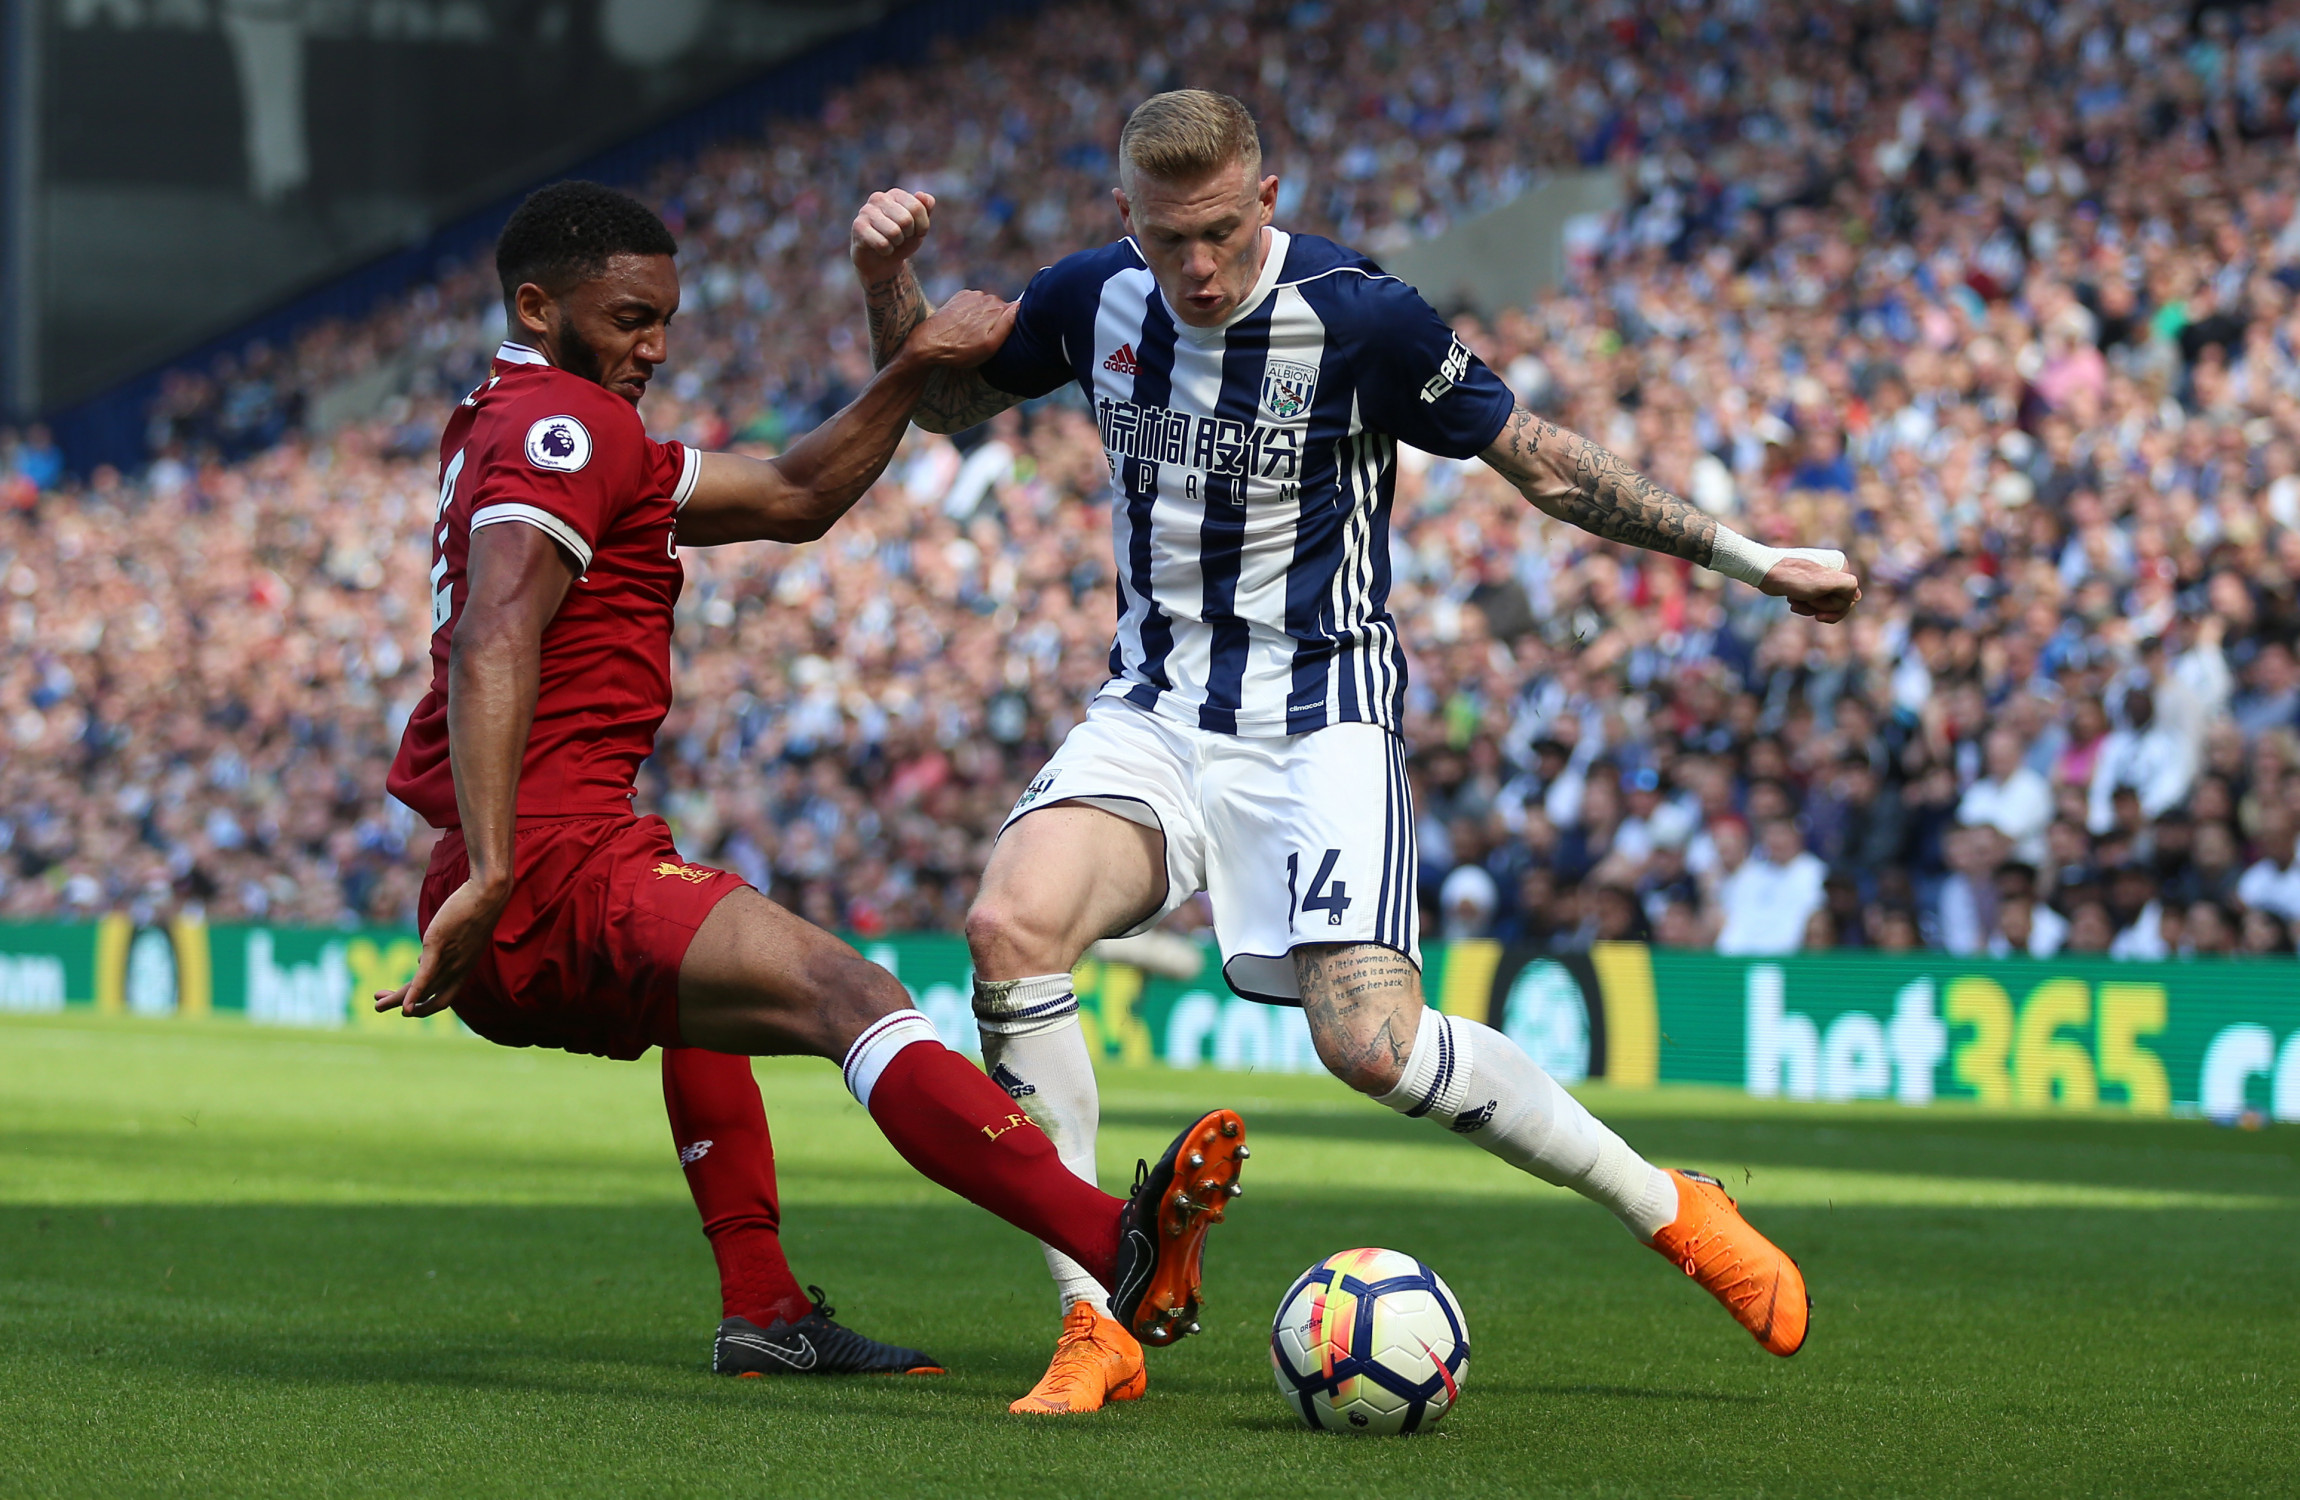 West Brom stay afloat after last-gasp 1-0 win over Spurs